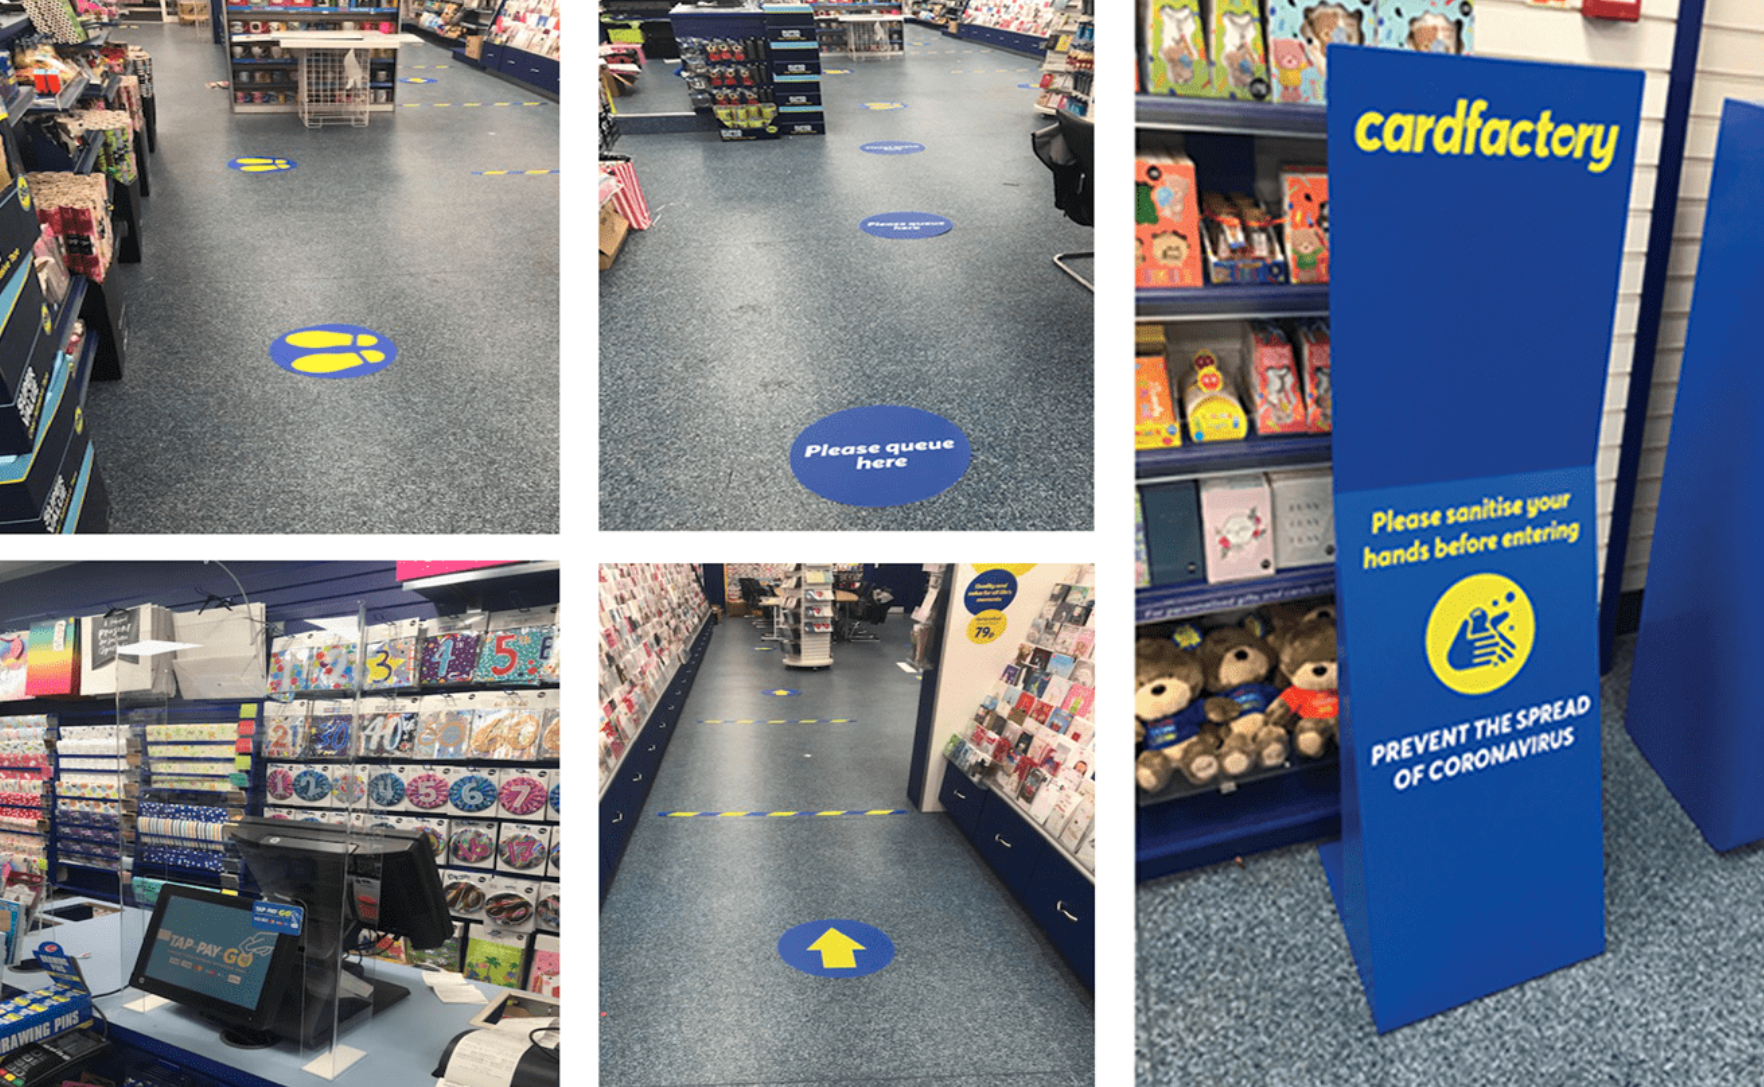 Above: Card Factory shows examples on its website of how it is safeguarding against Covid-19 in its stores.